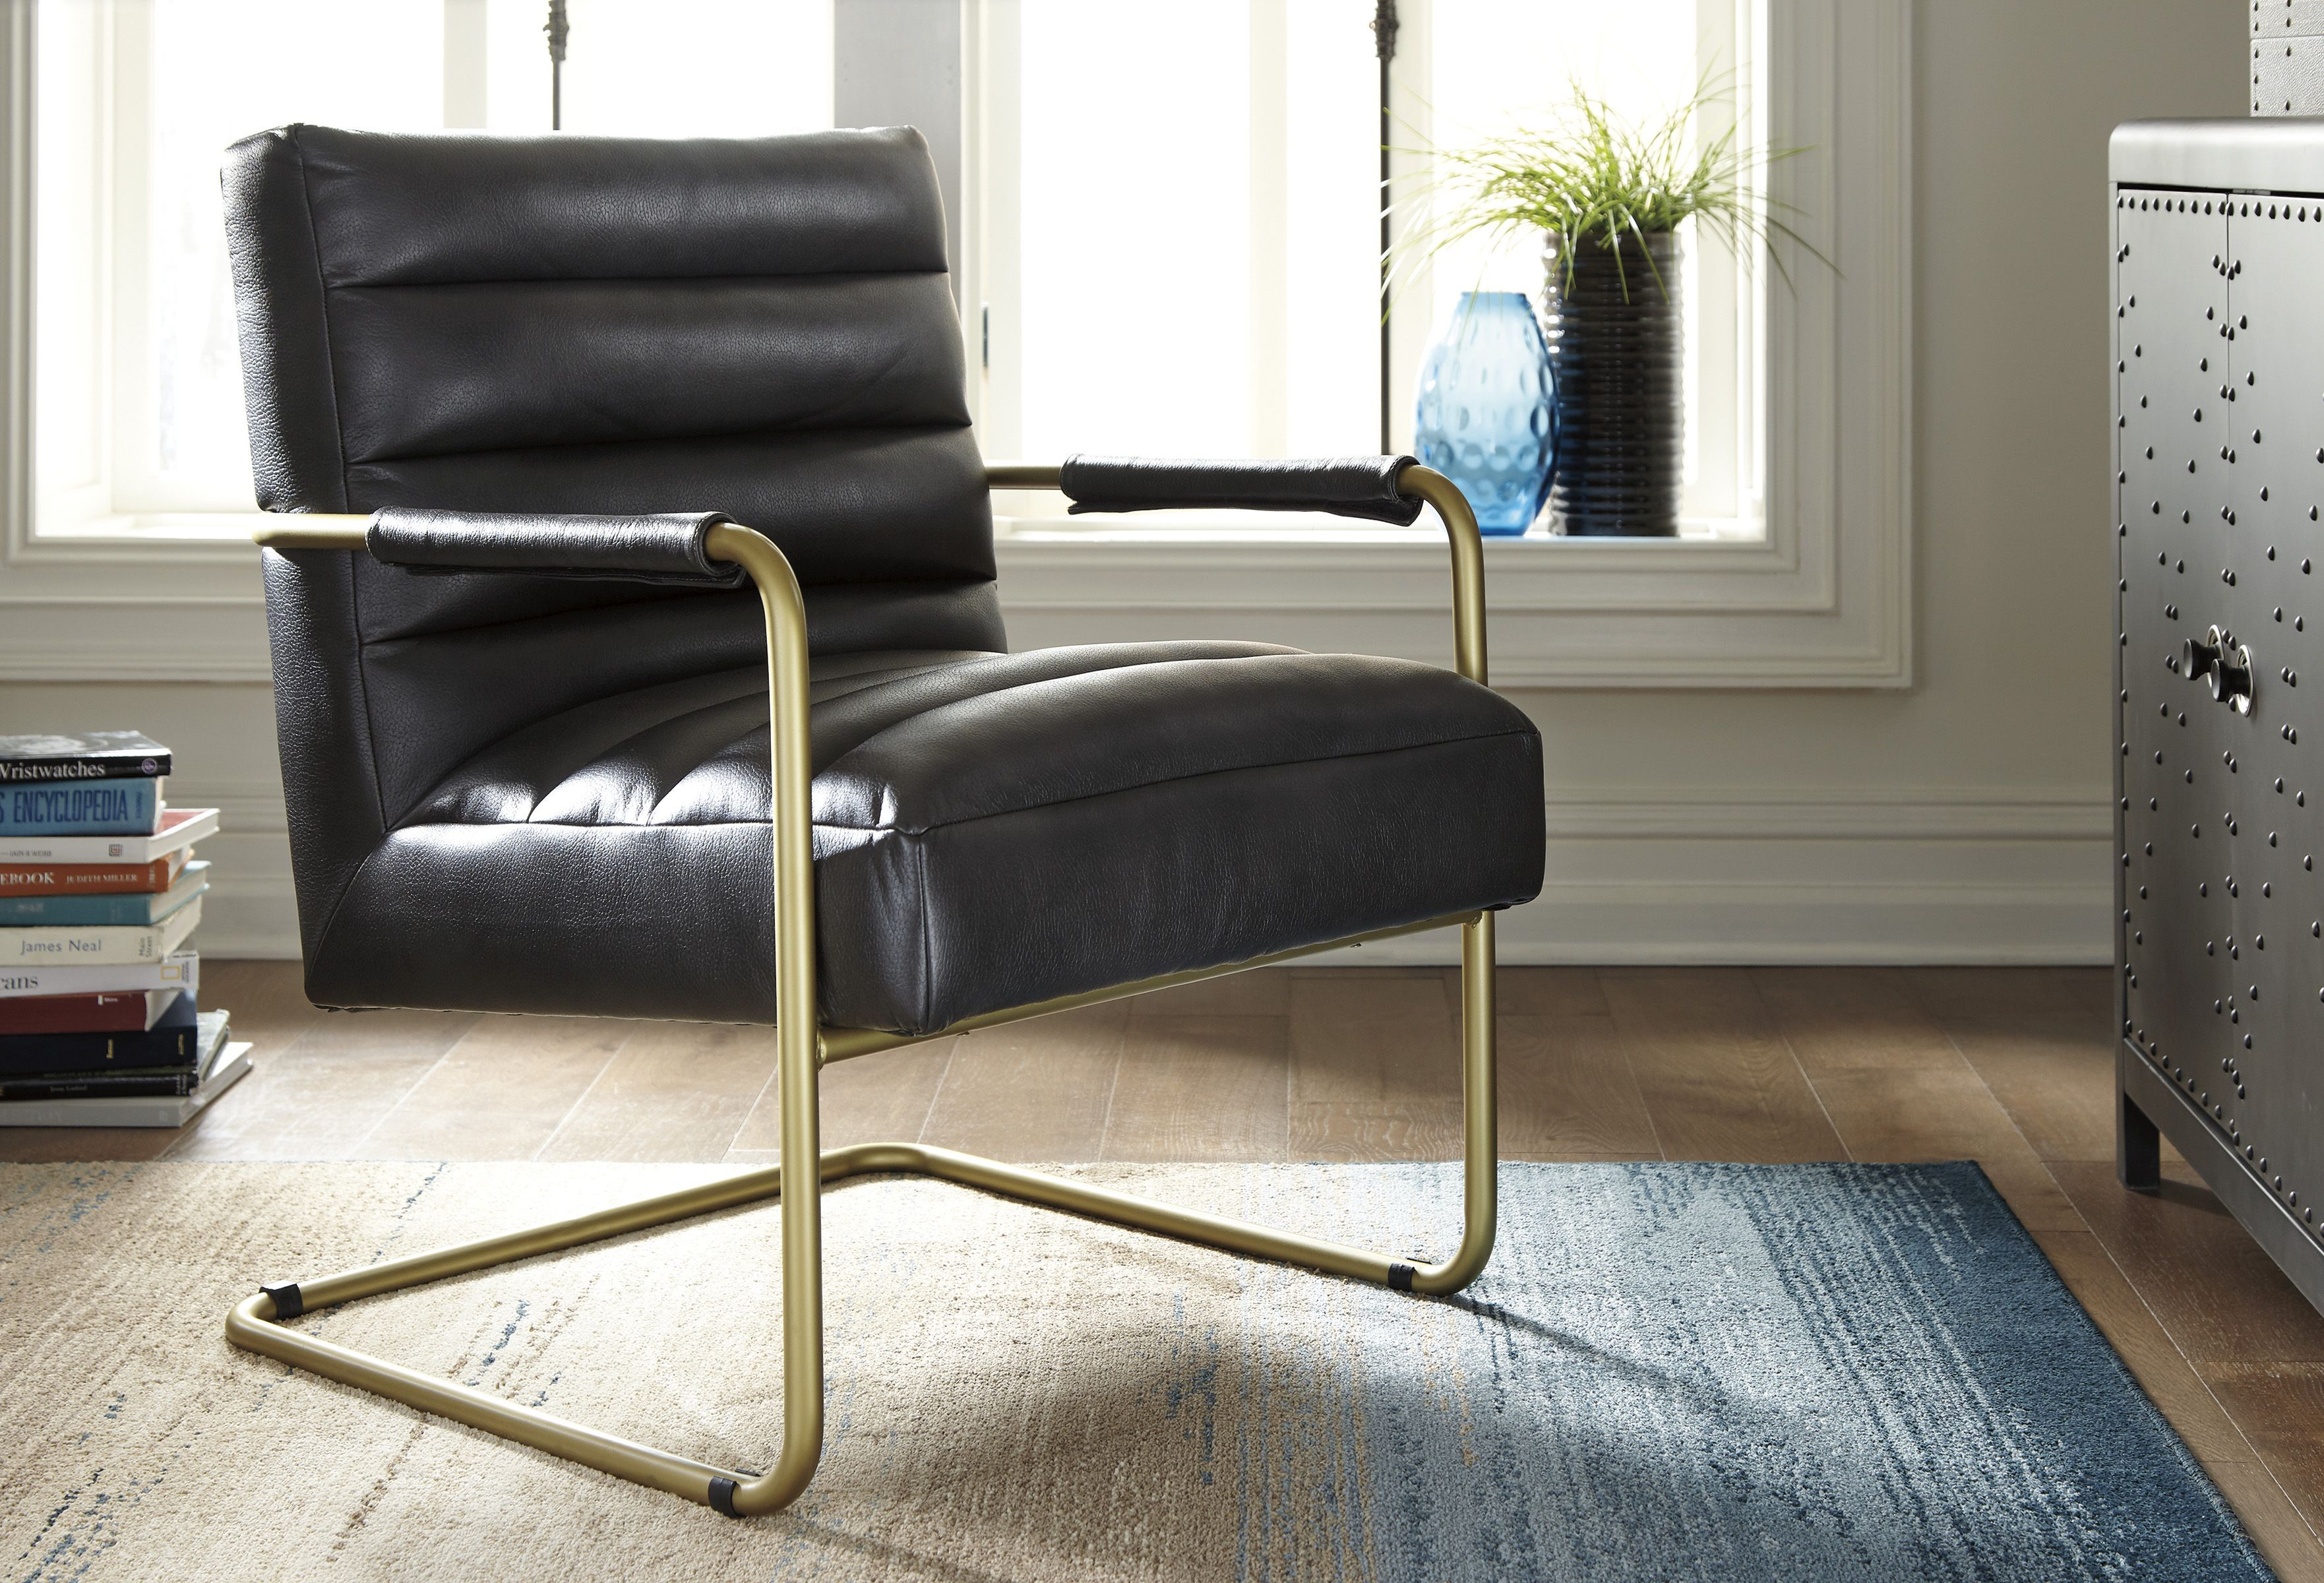 a3000024 the hackley accent chair contemporary interior design